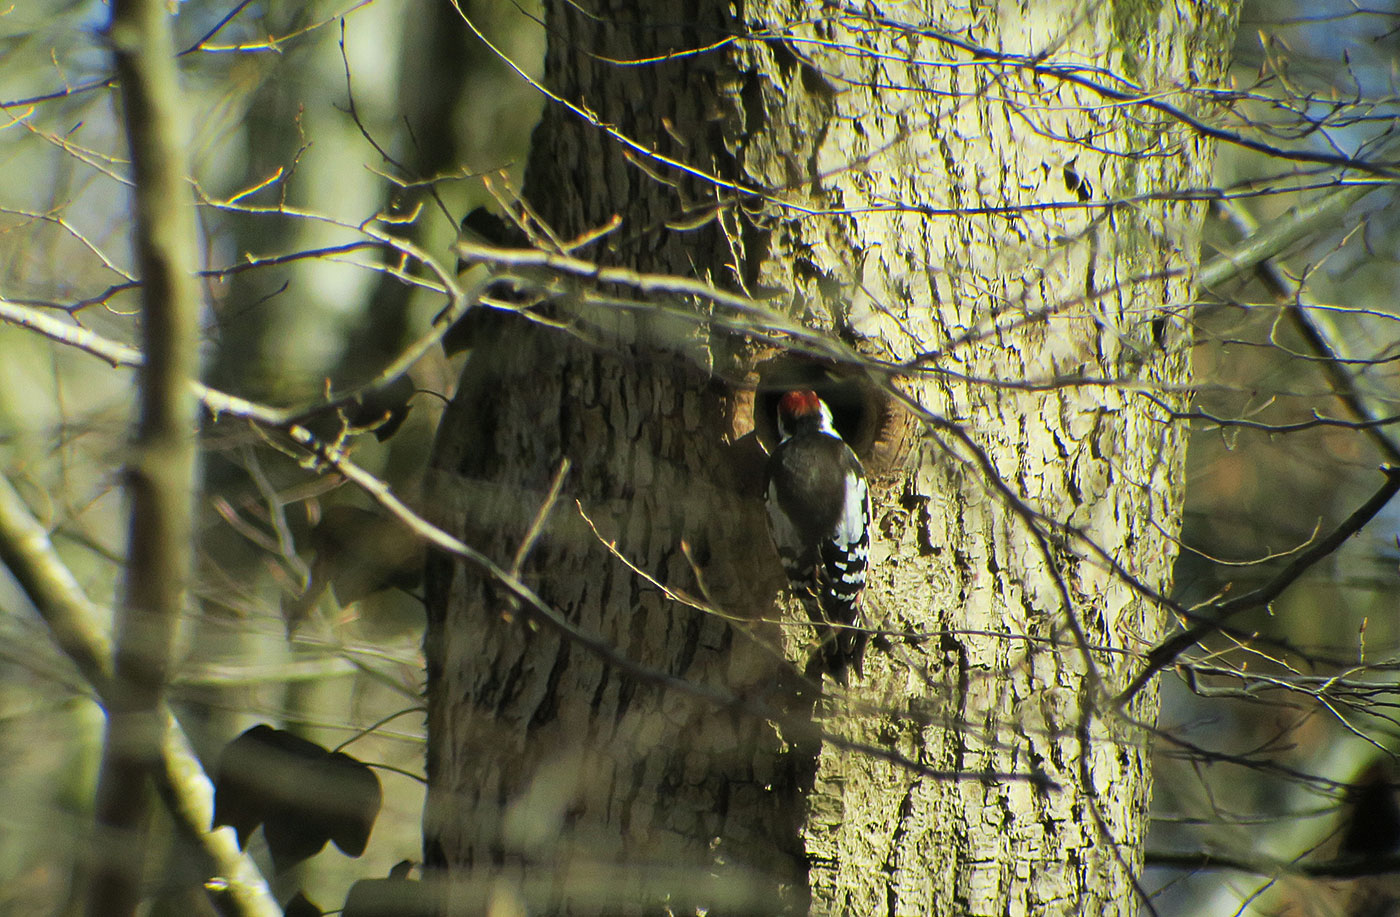 02_mittelspecht_middle-spotted-woodpecker_seeholz_ammersee_2019-02-23_7095